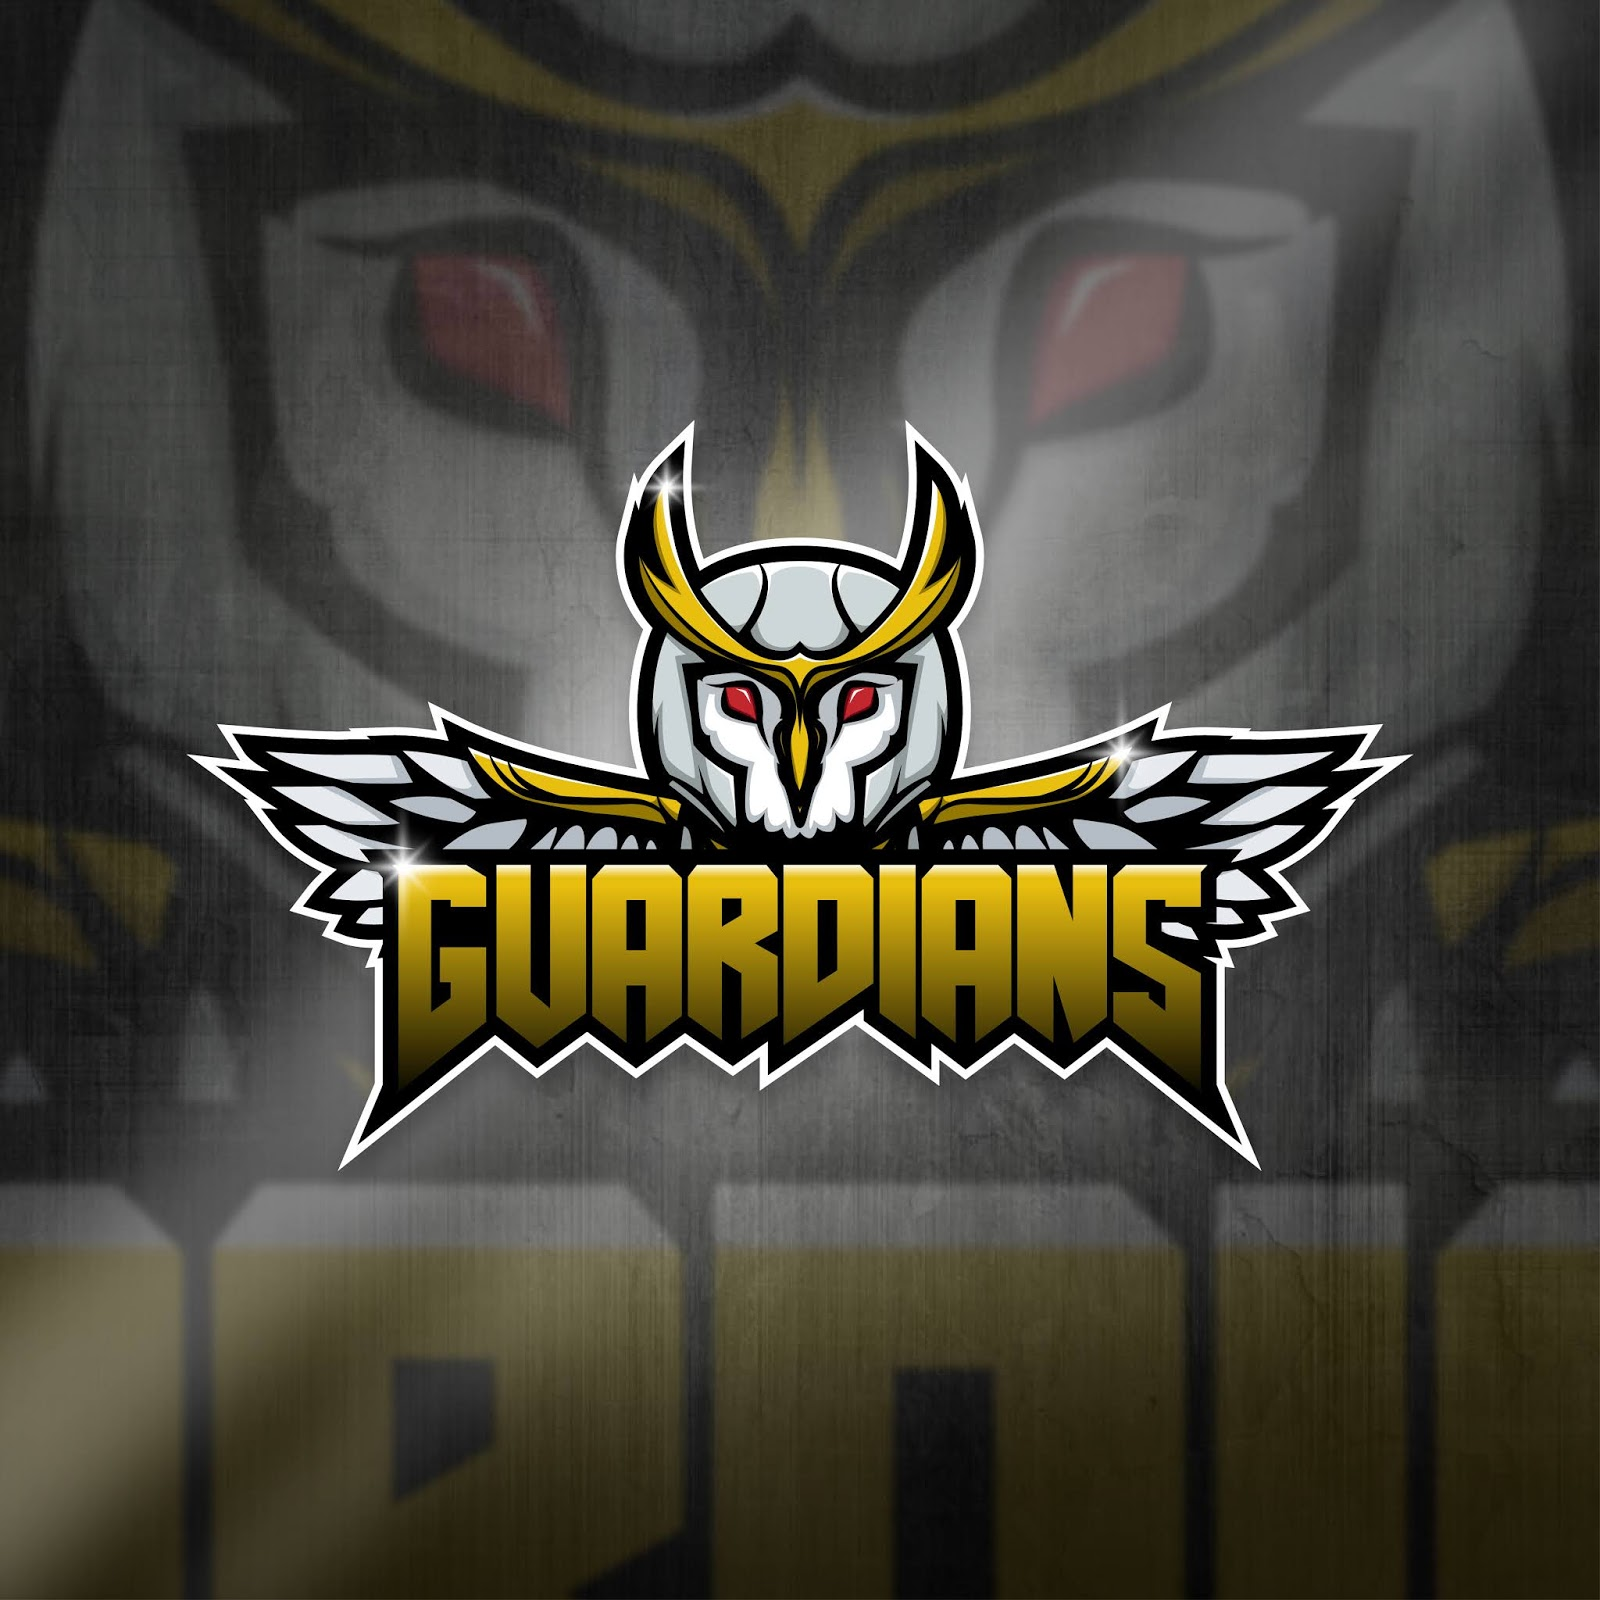 Esports Mascot Logo Team Owl Guardians Squad Free Download Vector CDR, AI, EPS and PNG Formats